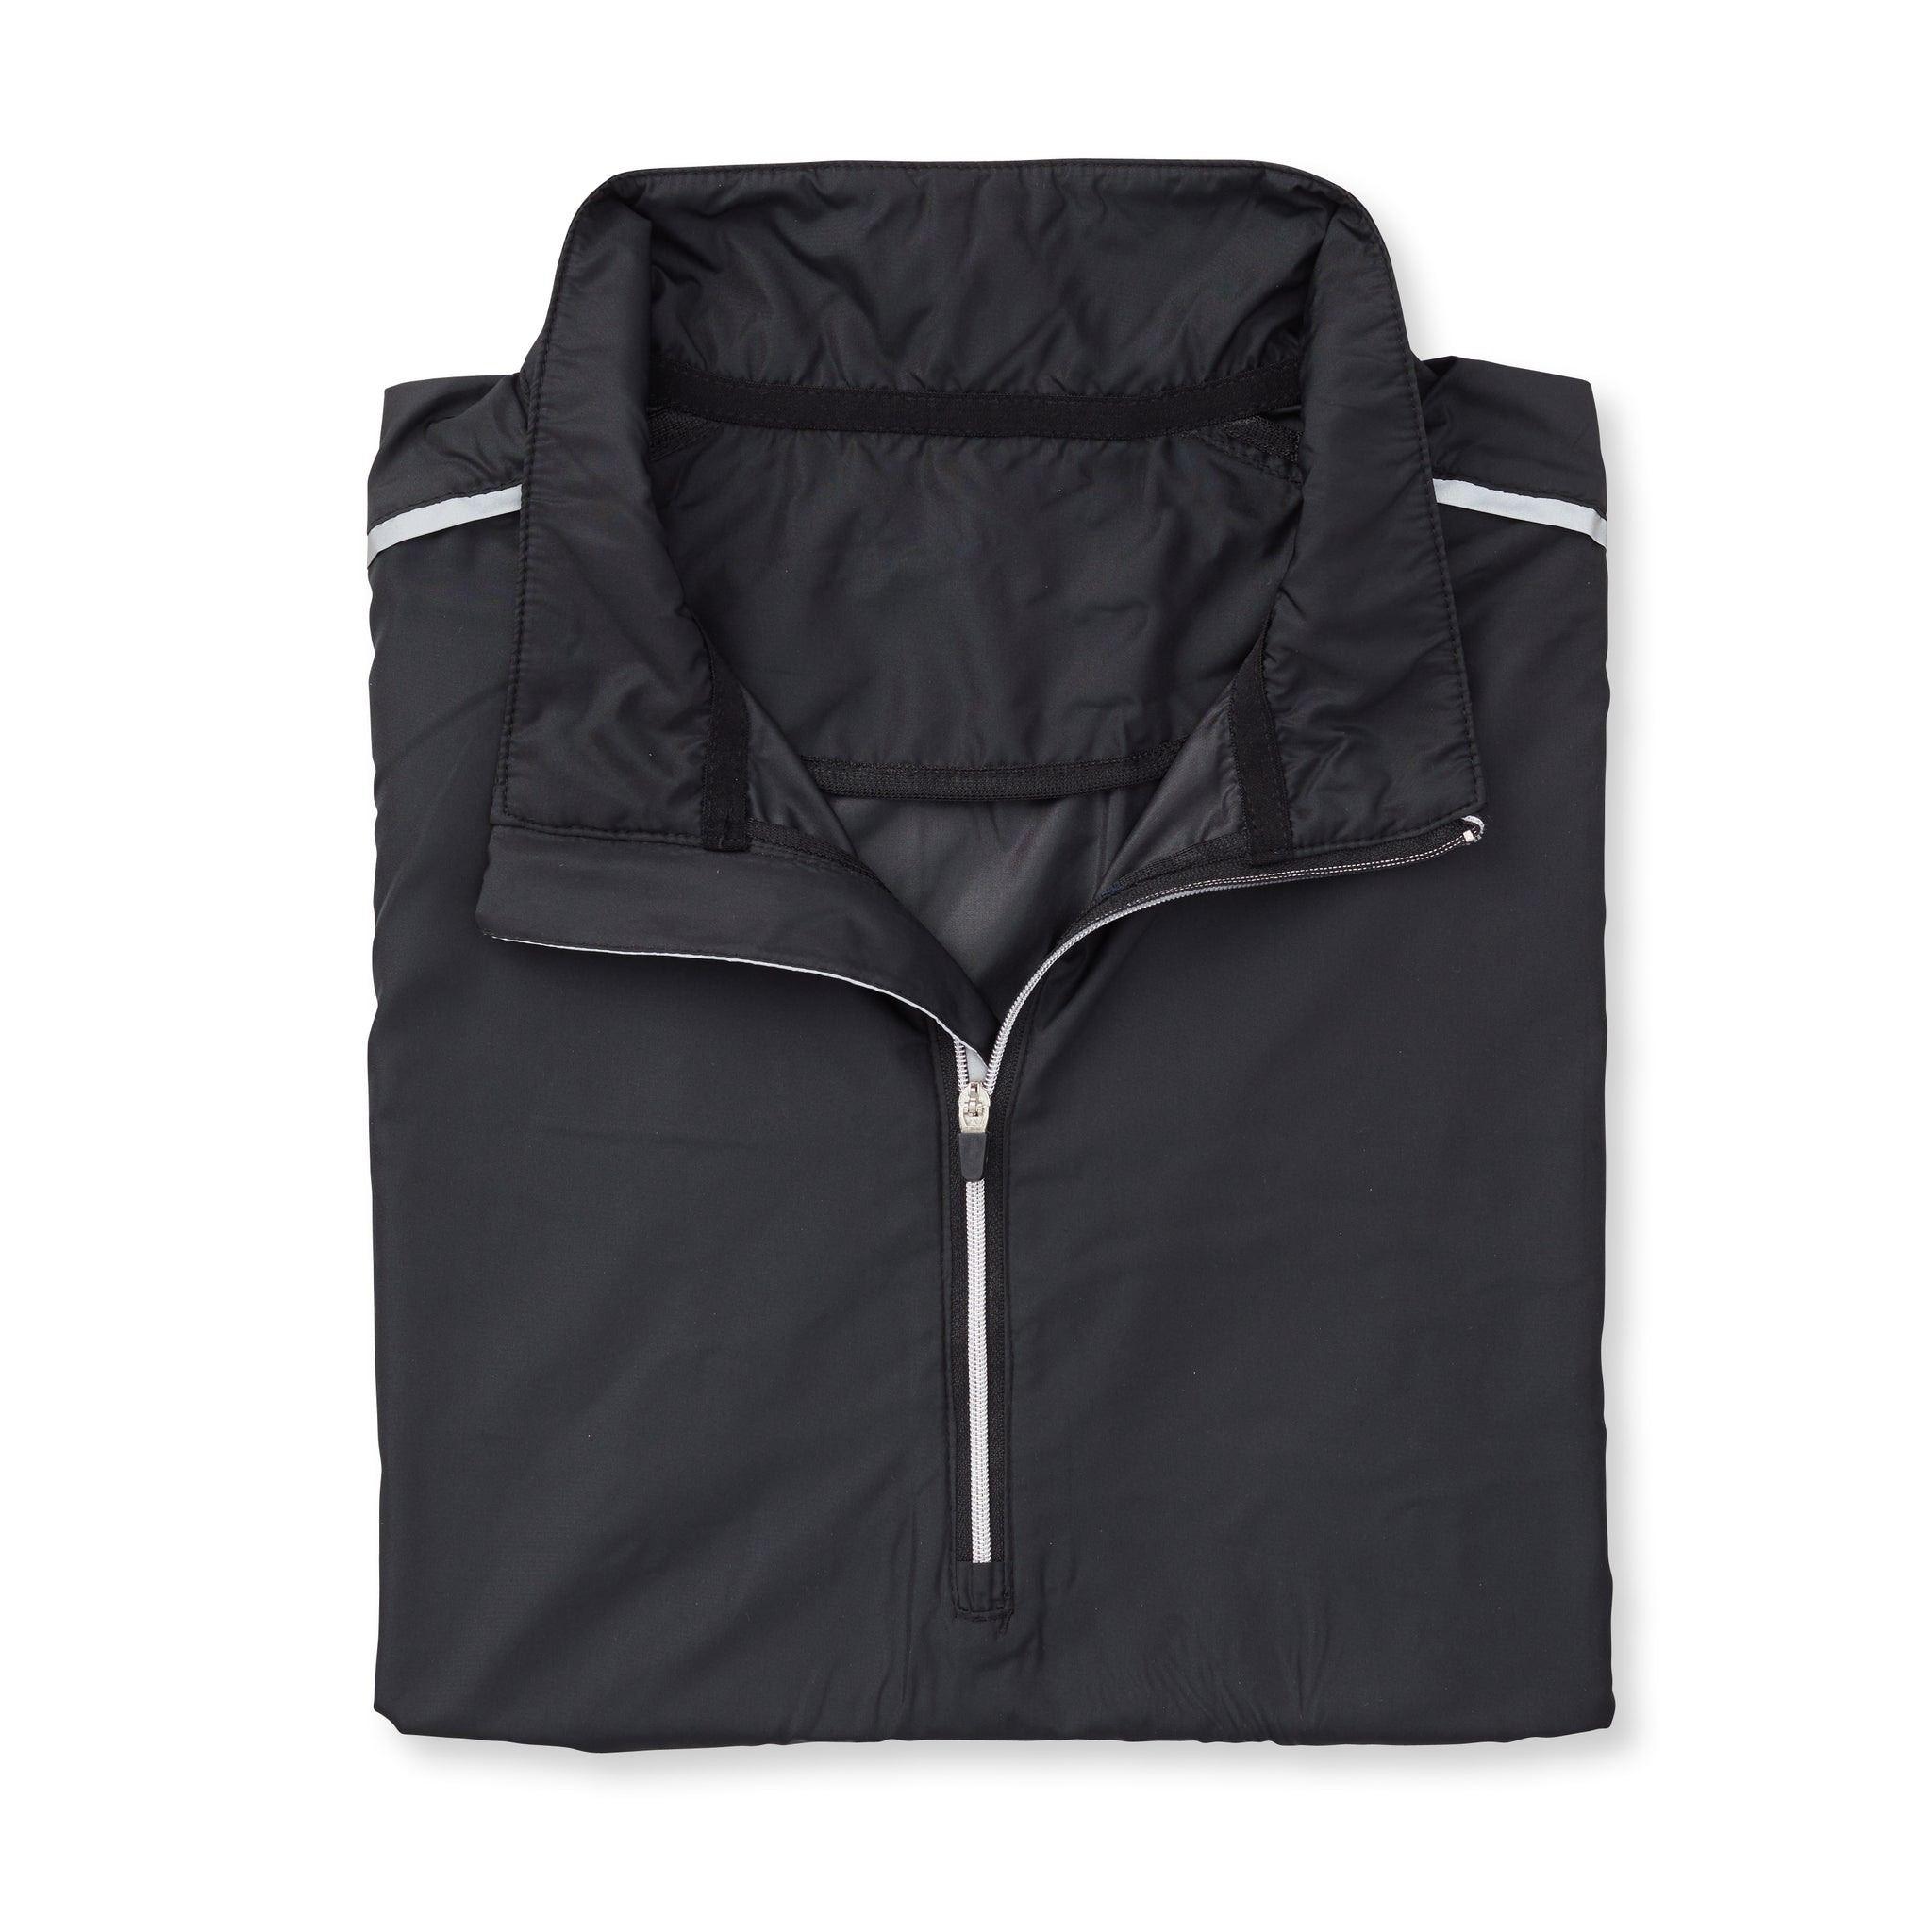 TEC WINDWEAR Half Zip Jacket - Black